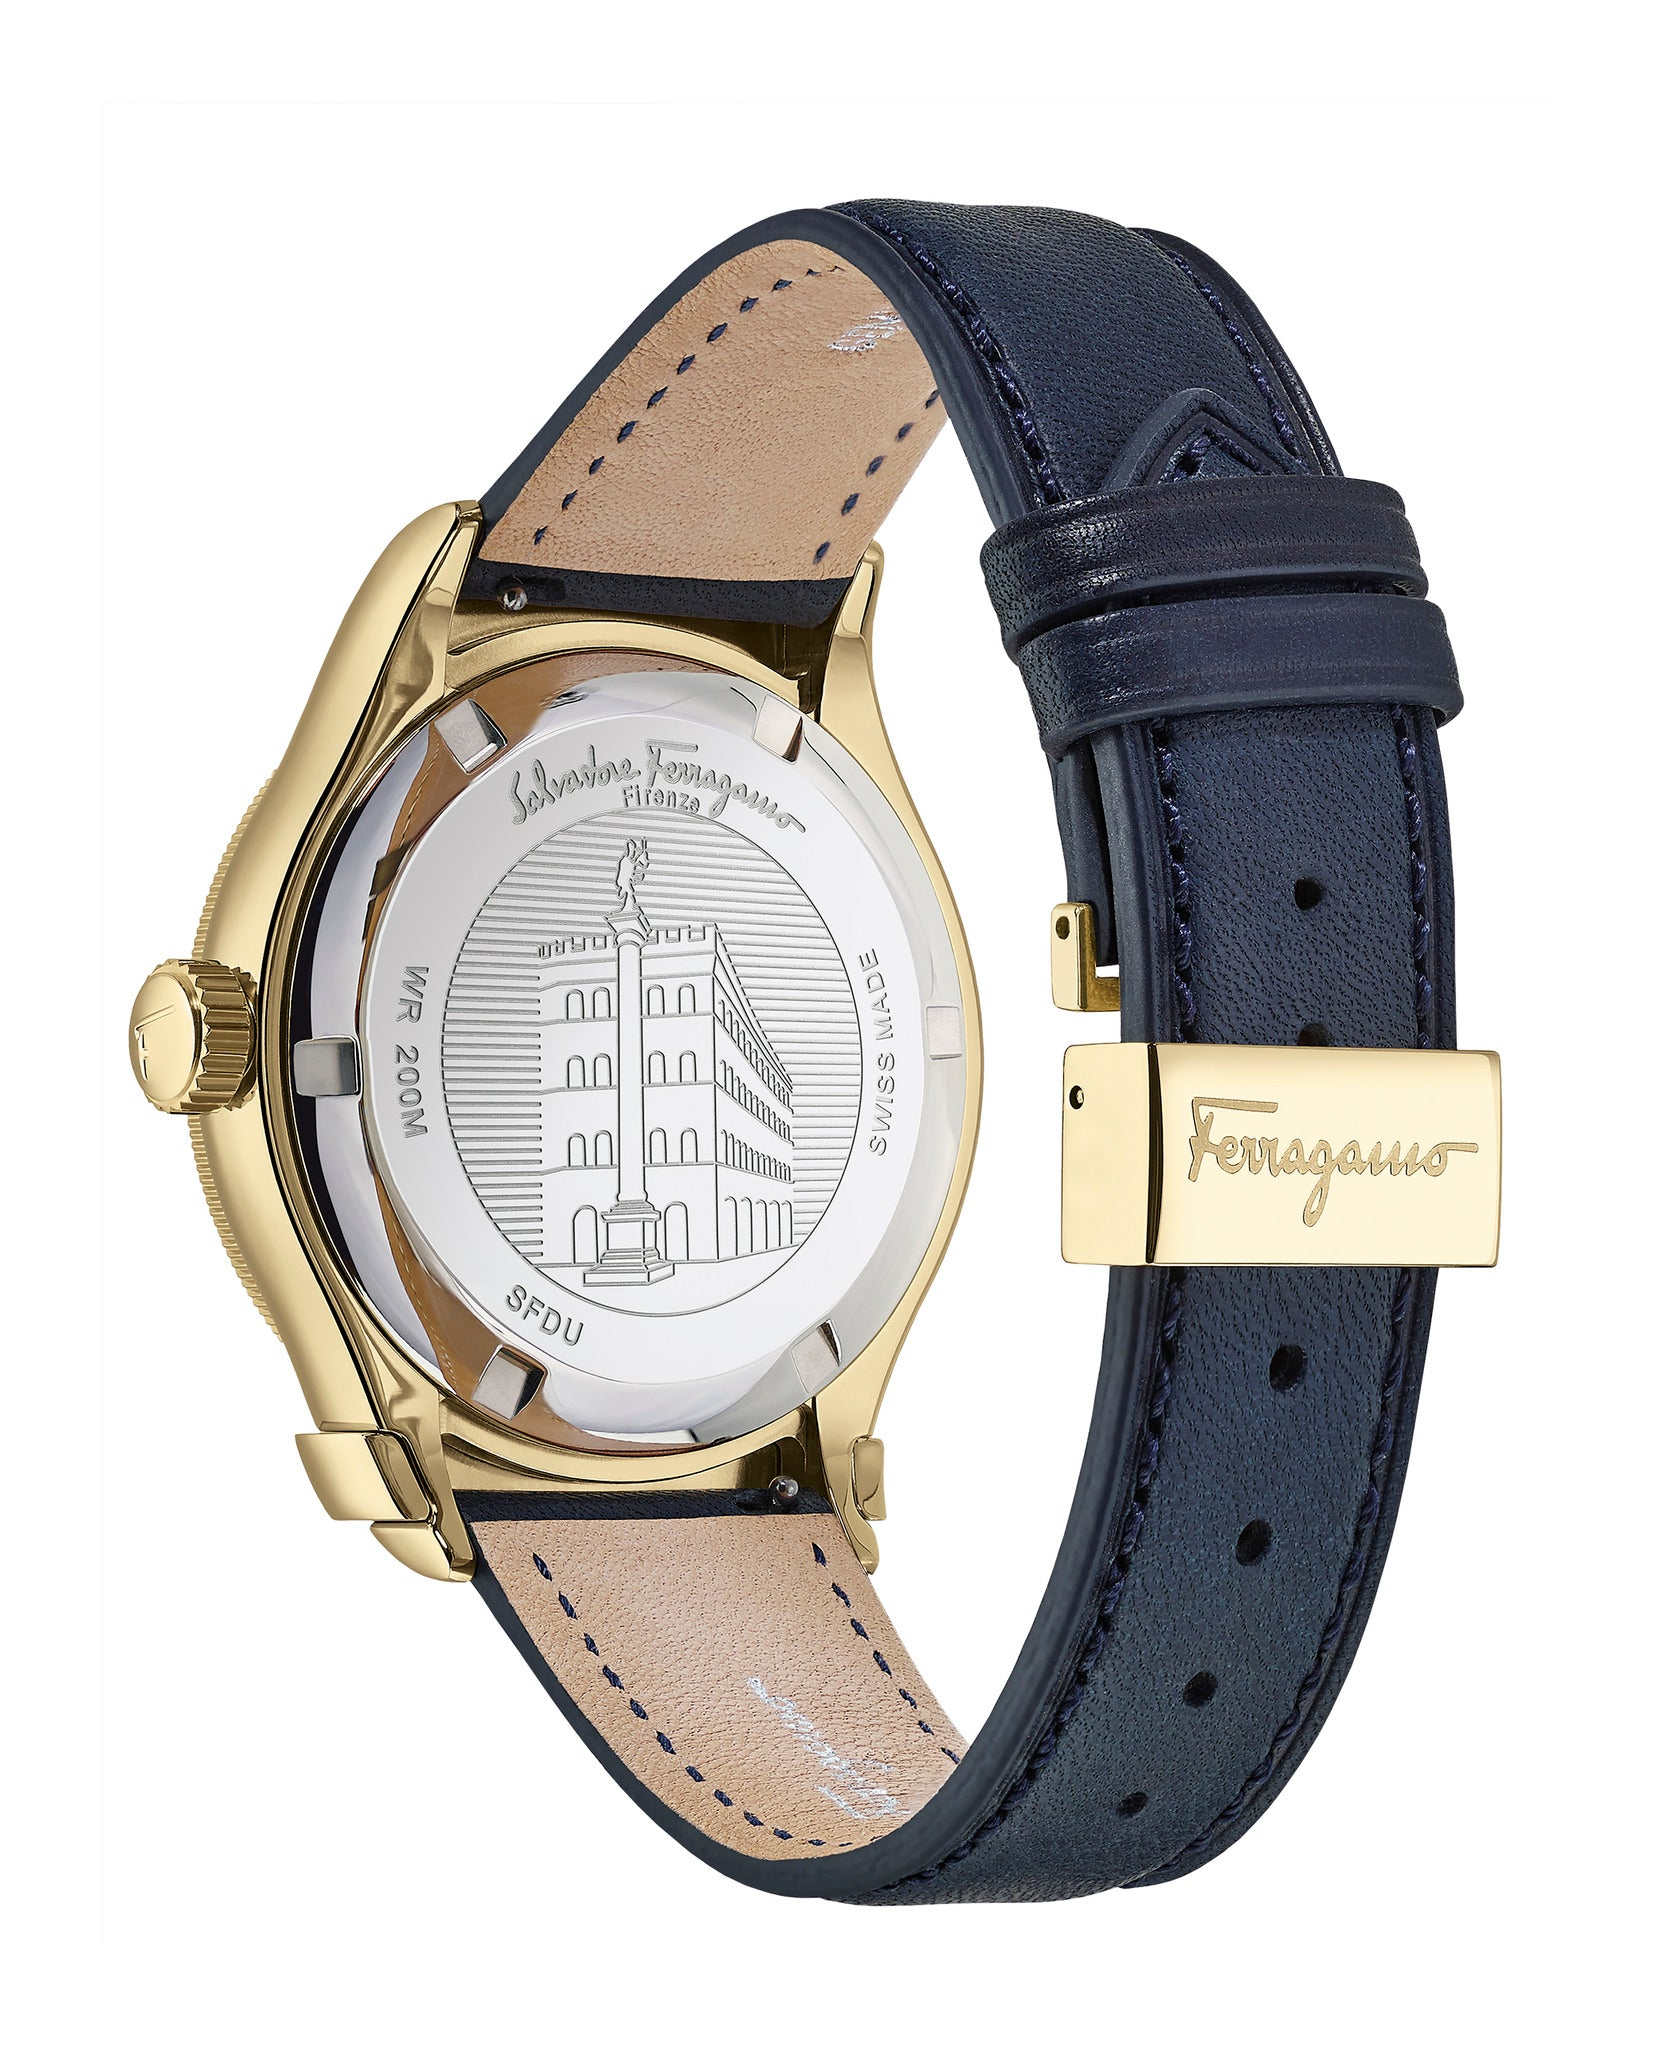 Salvatore Ferragamo Ferragamo 1898 Sport Watch